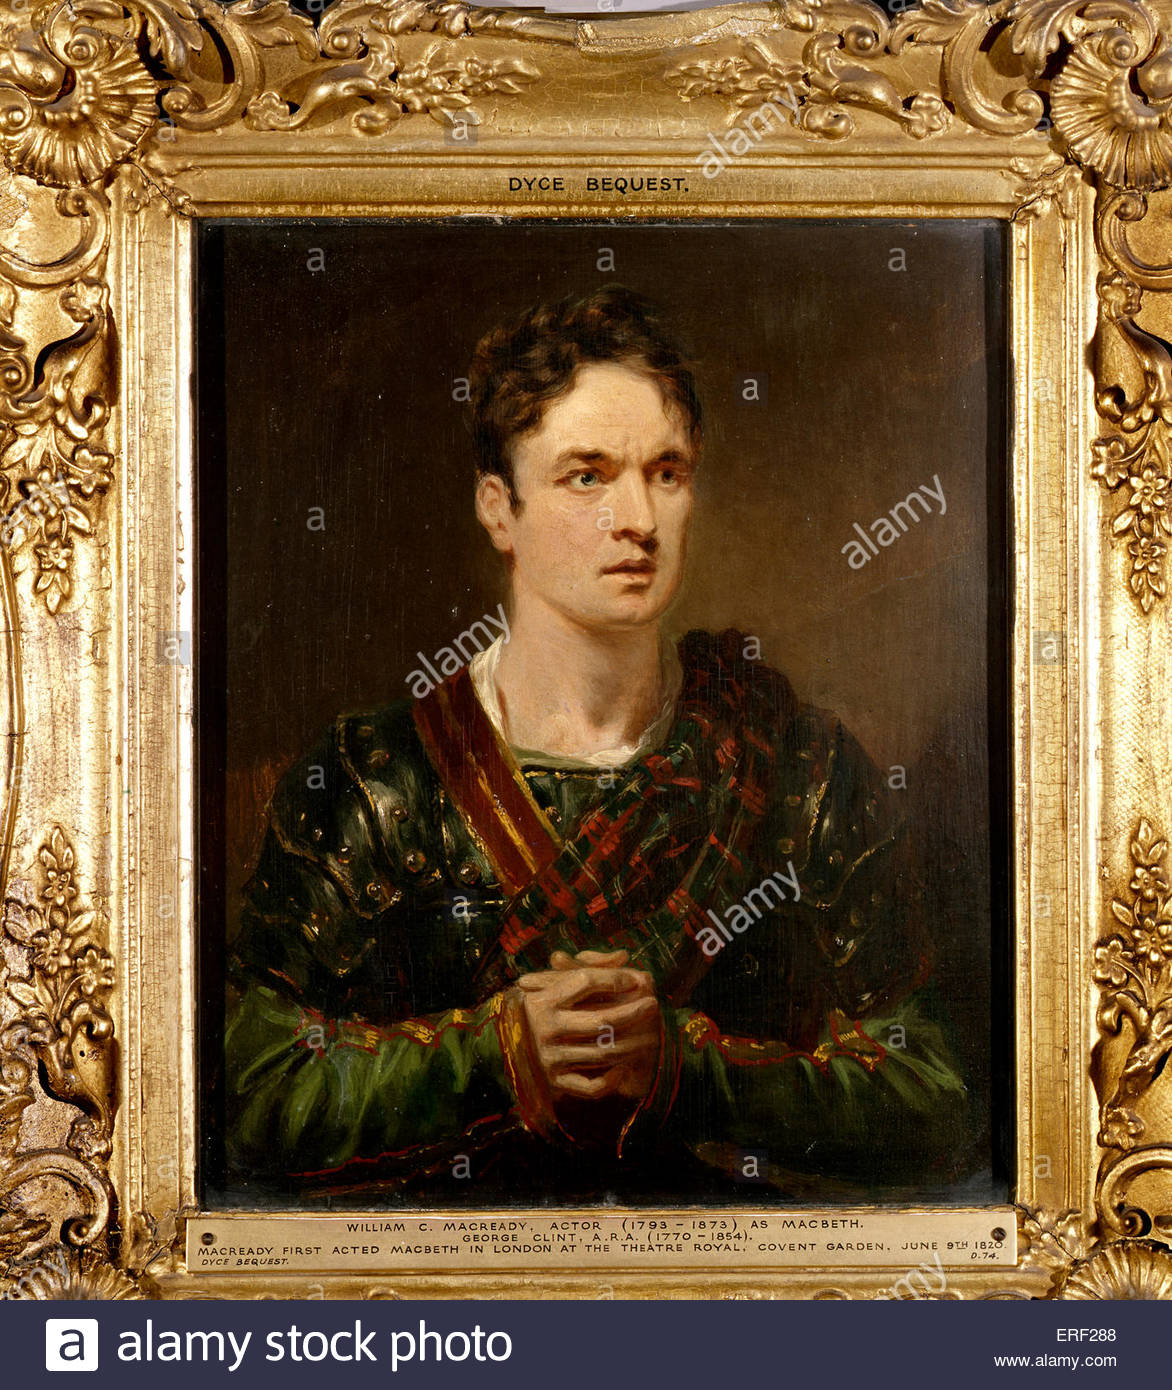 William C Macready as Macbeth by George Clint. 3 March 1793 – 27 April 1873 - Stock Image